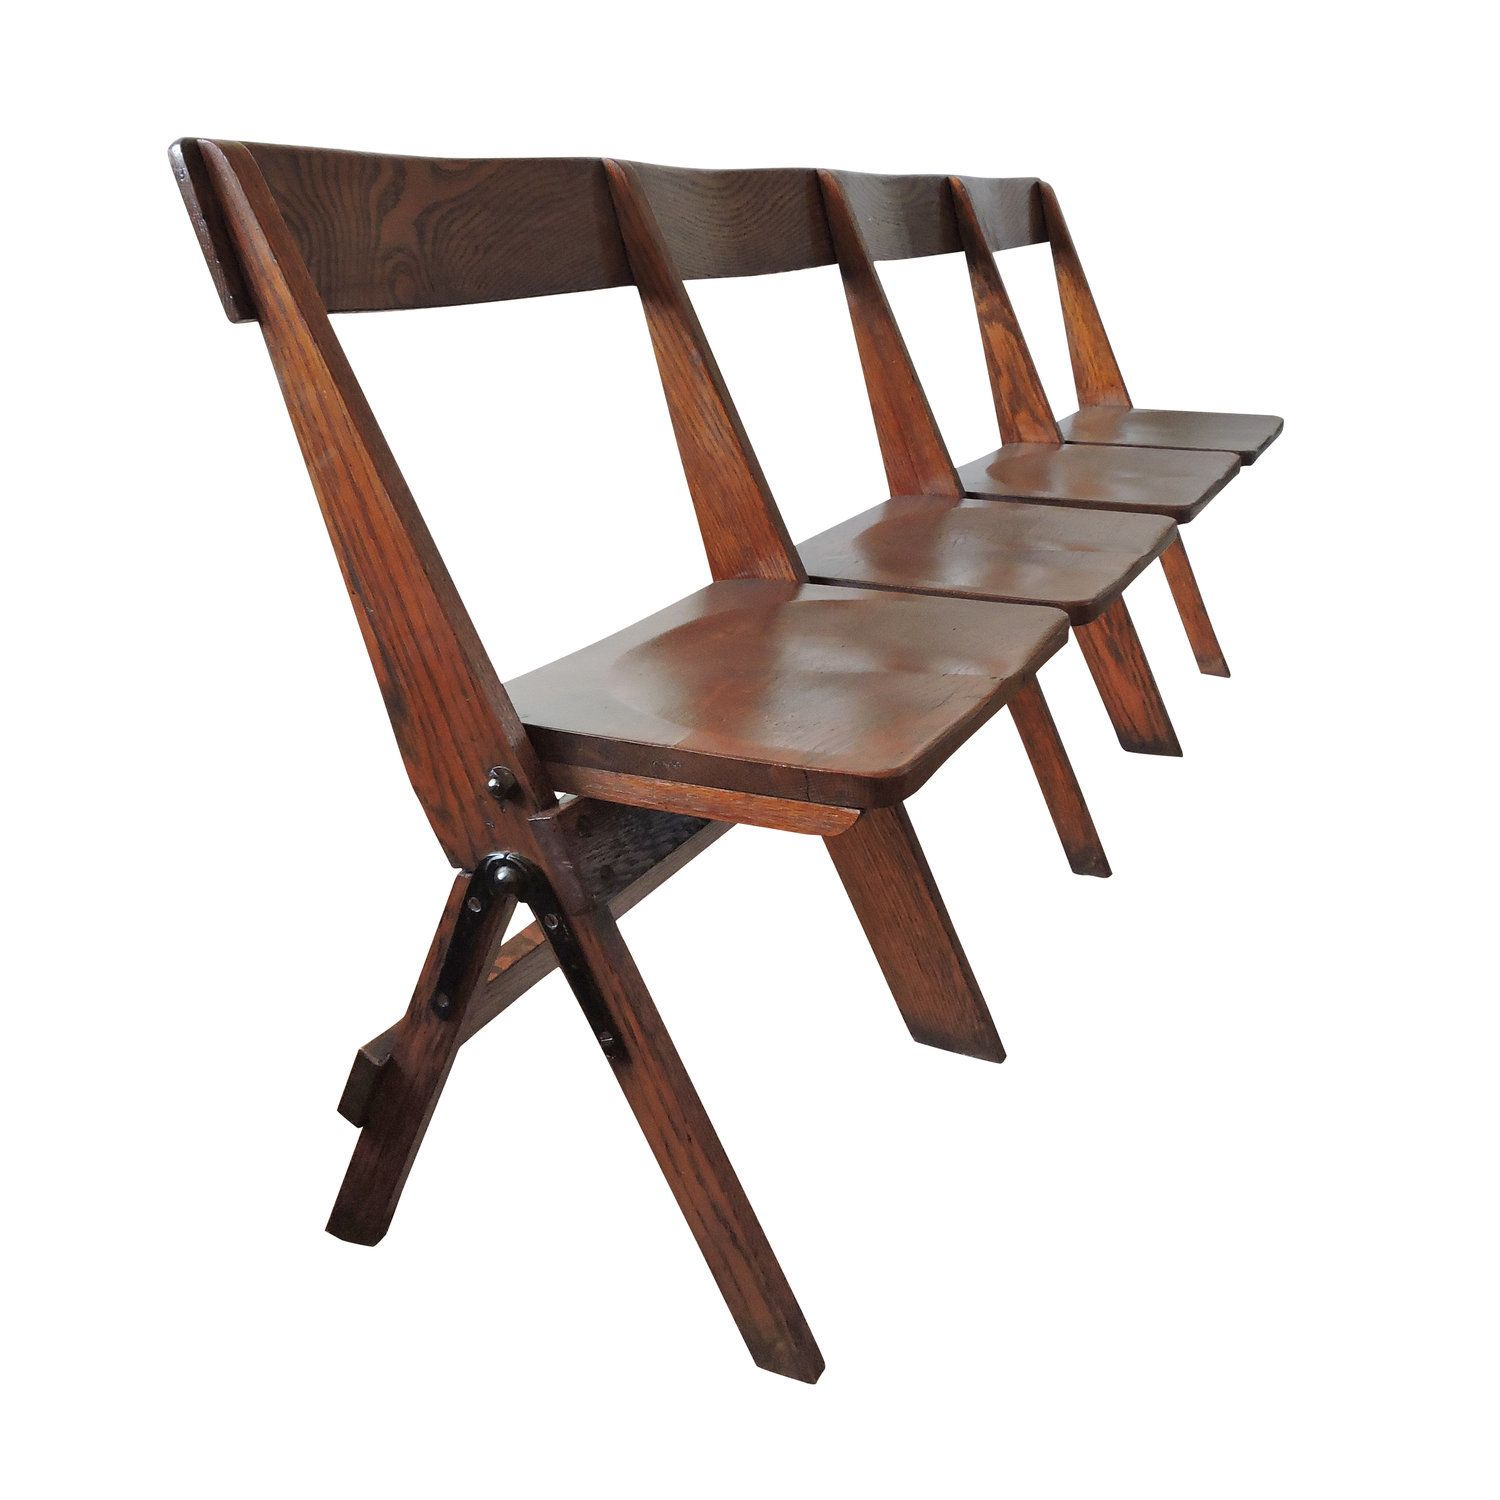 Vintage Conjoined Folding Chapel Chairs 1920s In 2019 Products